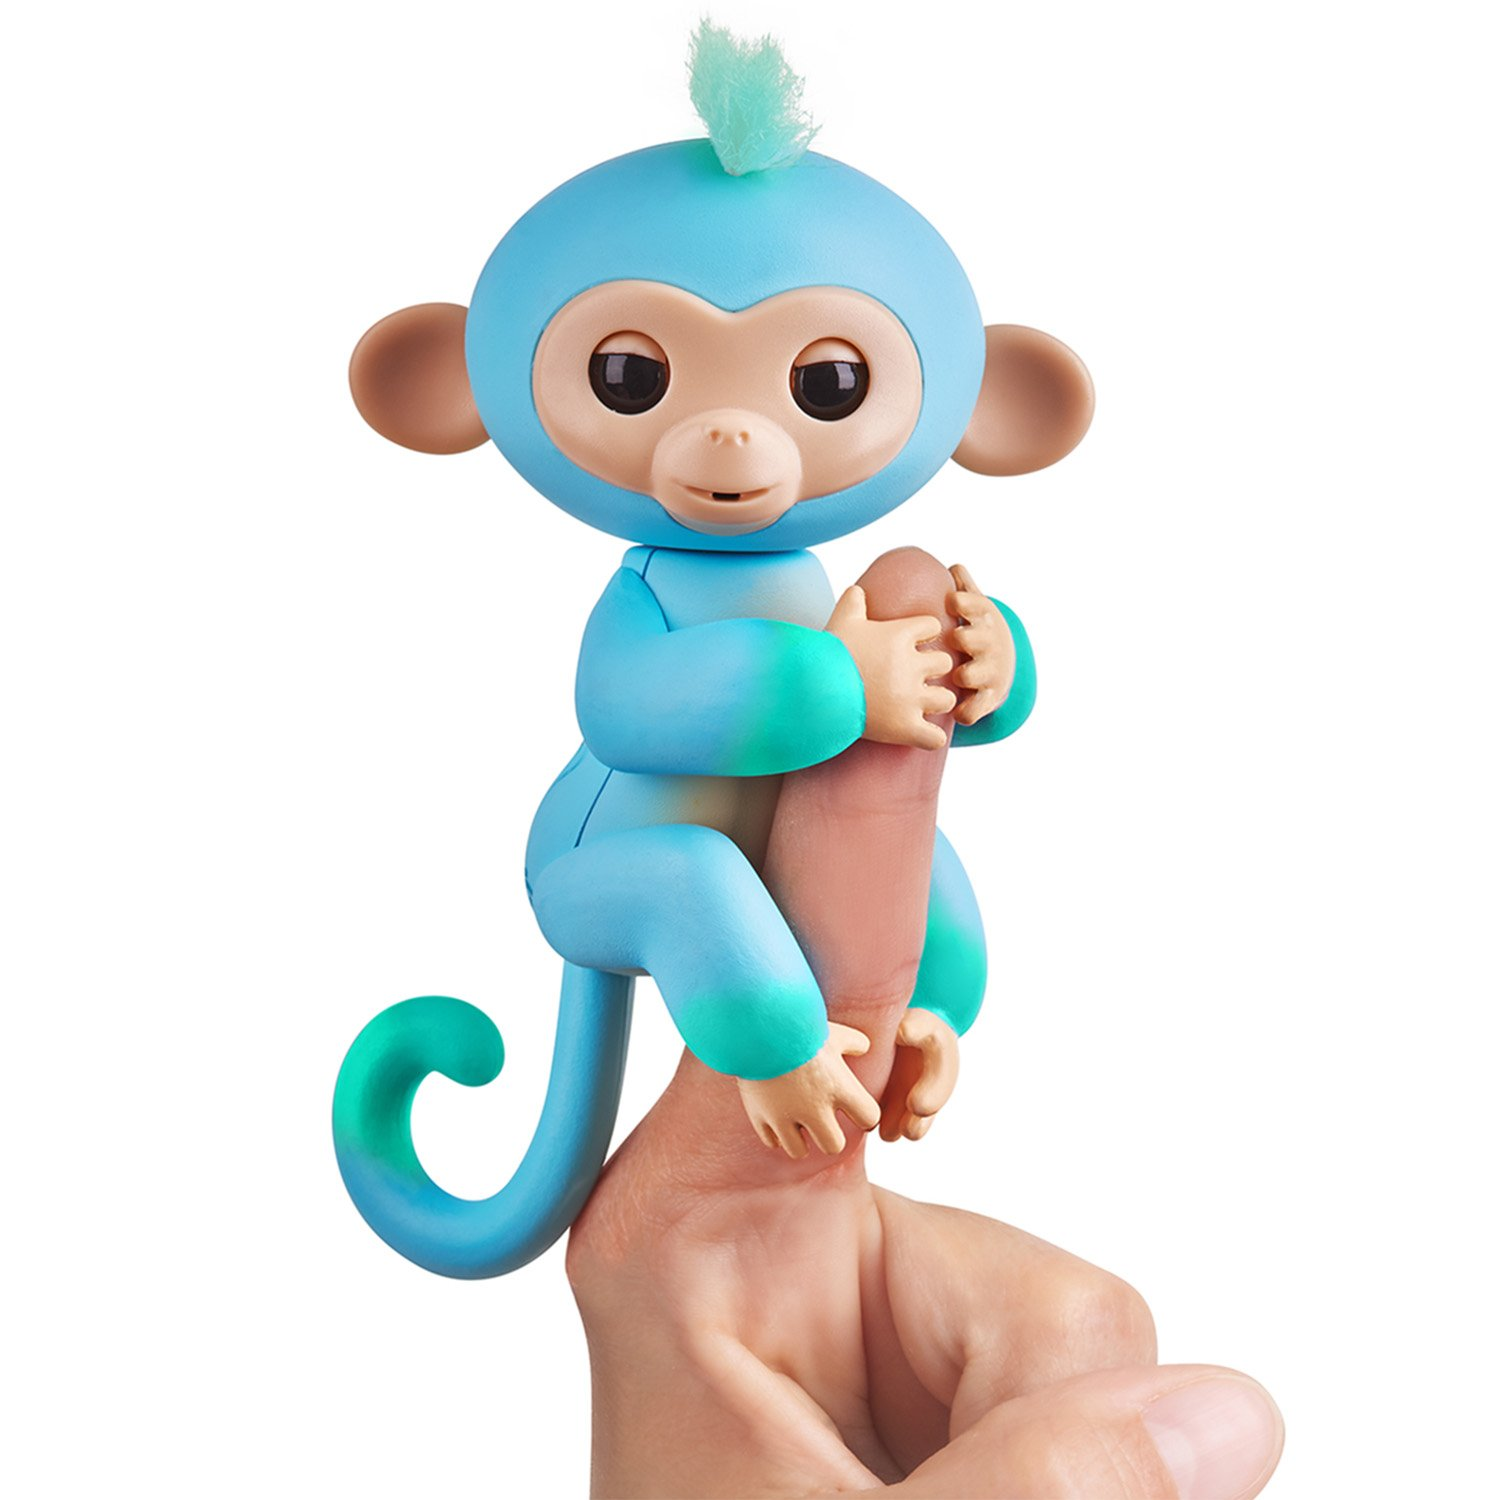 WowWee Fingerlings 2Tone Monkey - Charlie (Blue with Green accents) - Interactive Baby Pet - By